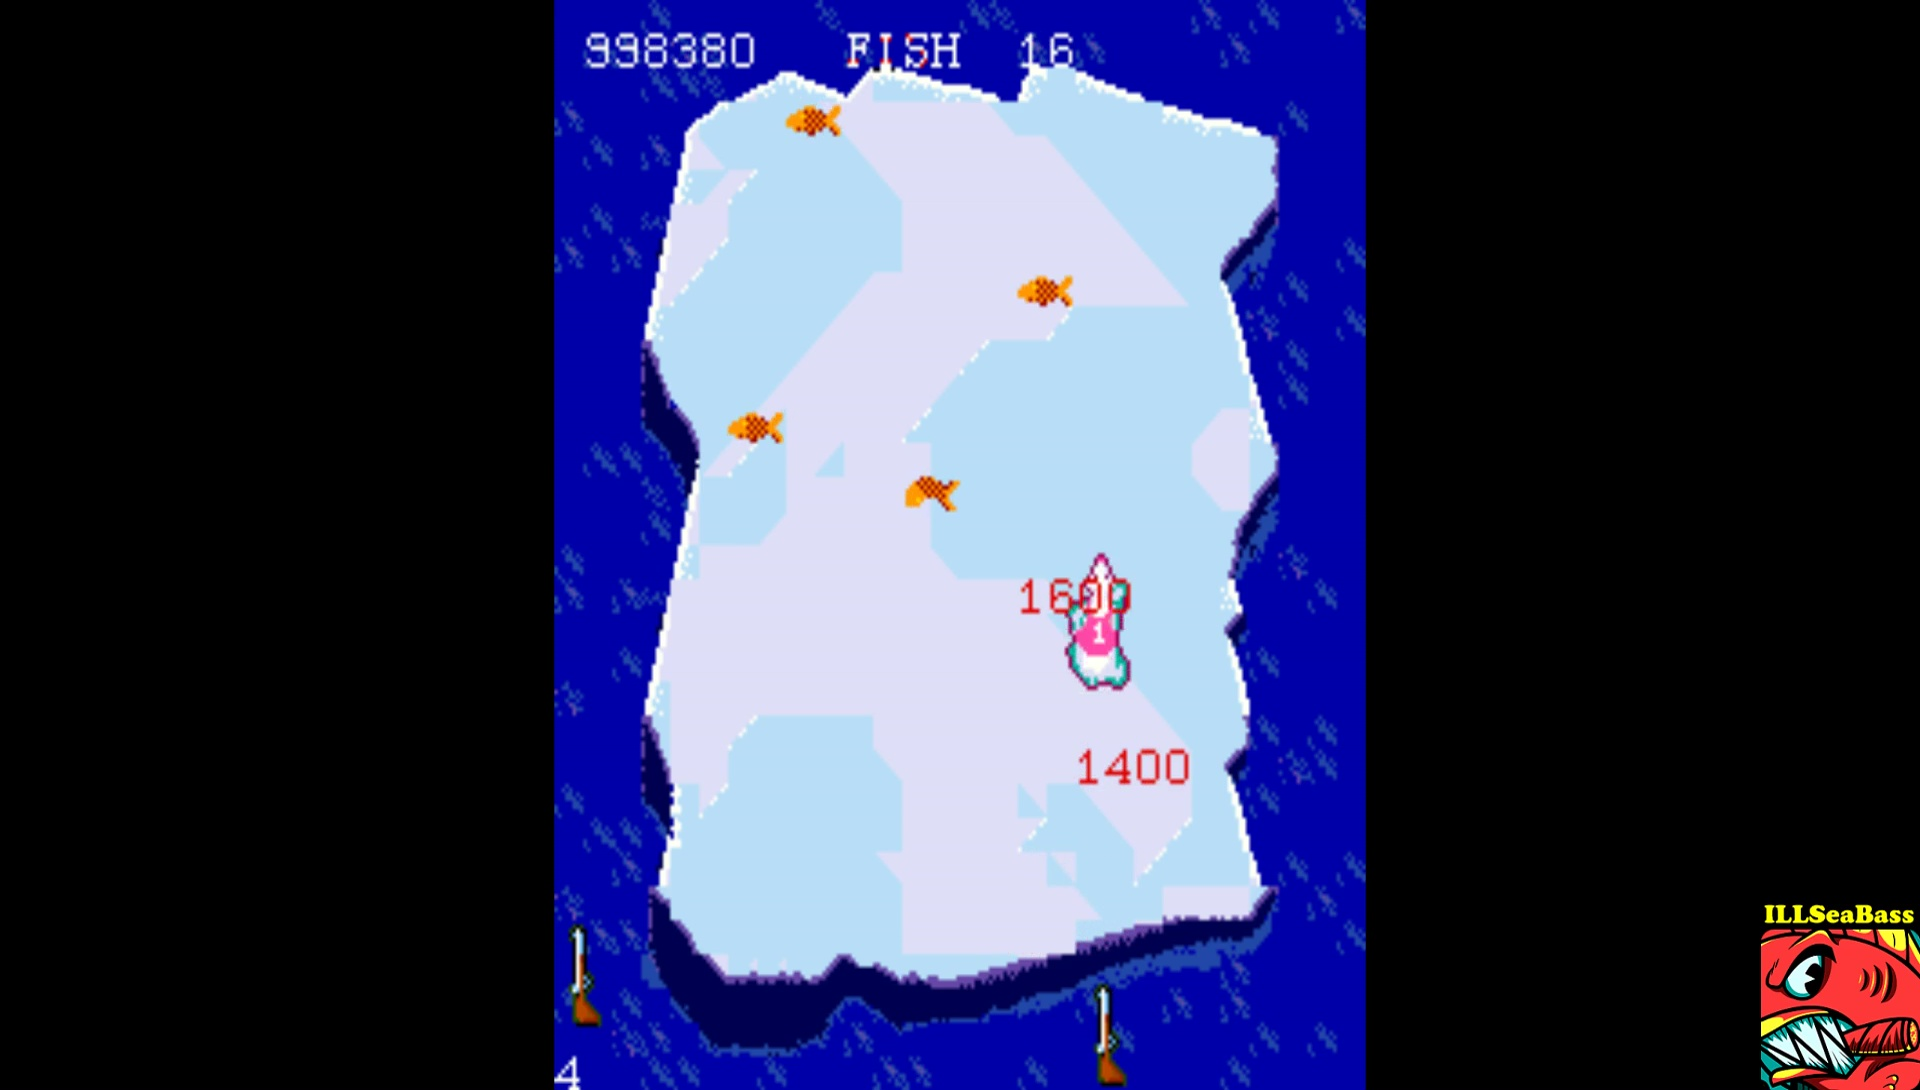 ILLSeaBass: Razzmatazz [razmataz] (Arcade Emulated / M.A.M.E.) 1,102,650 points on 2017-09-09 17:46:22